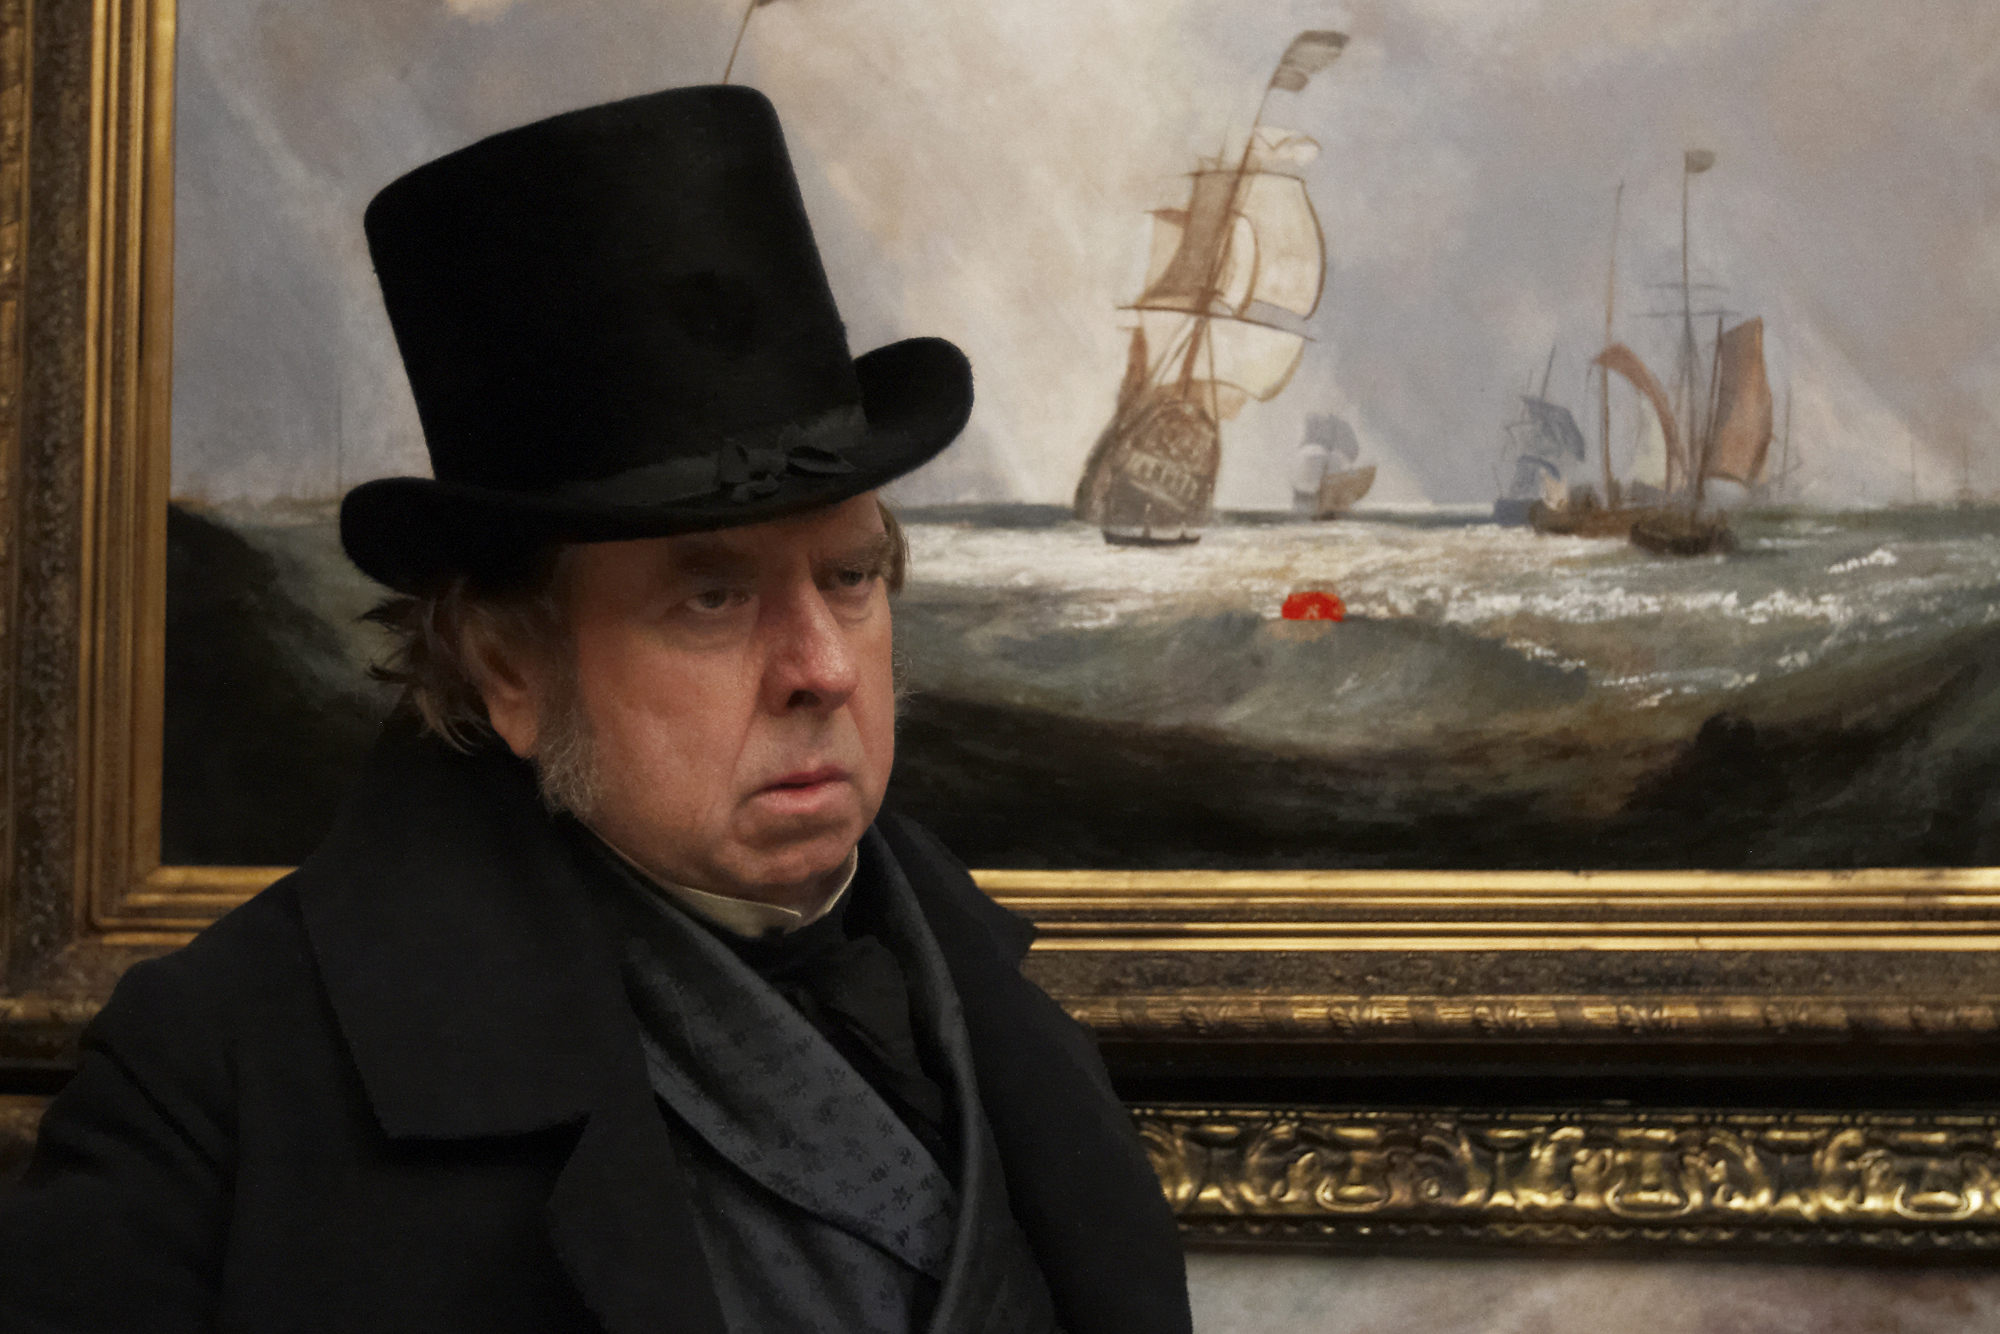 High Resolution Wallpaper | Mr. Turner 2000x1334 px